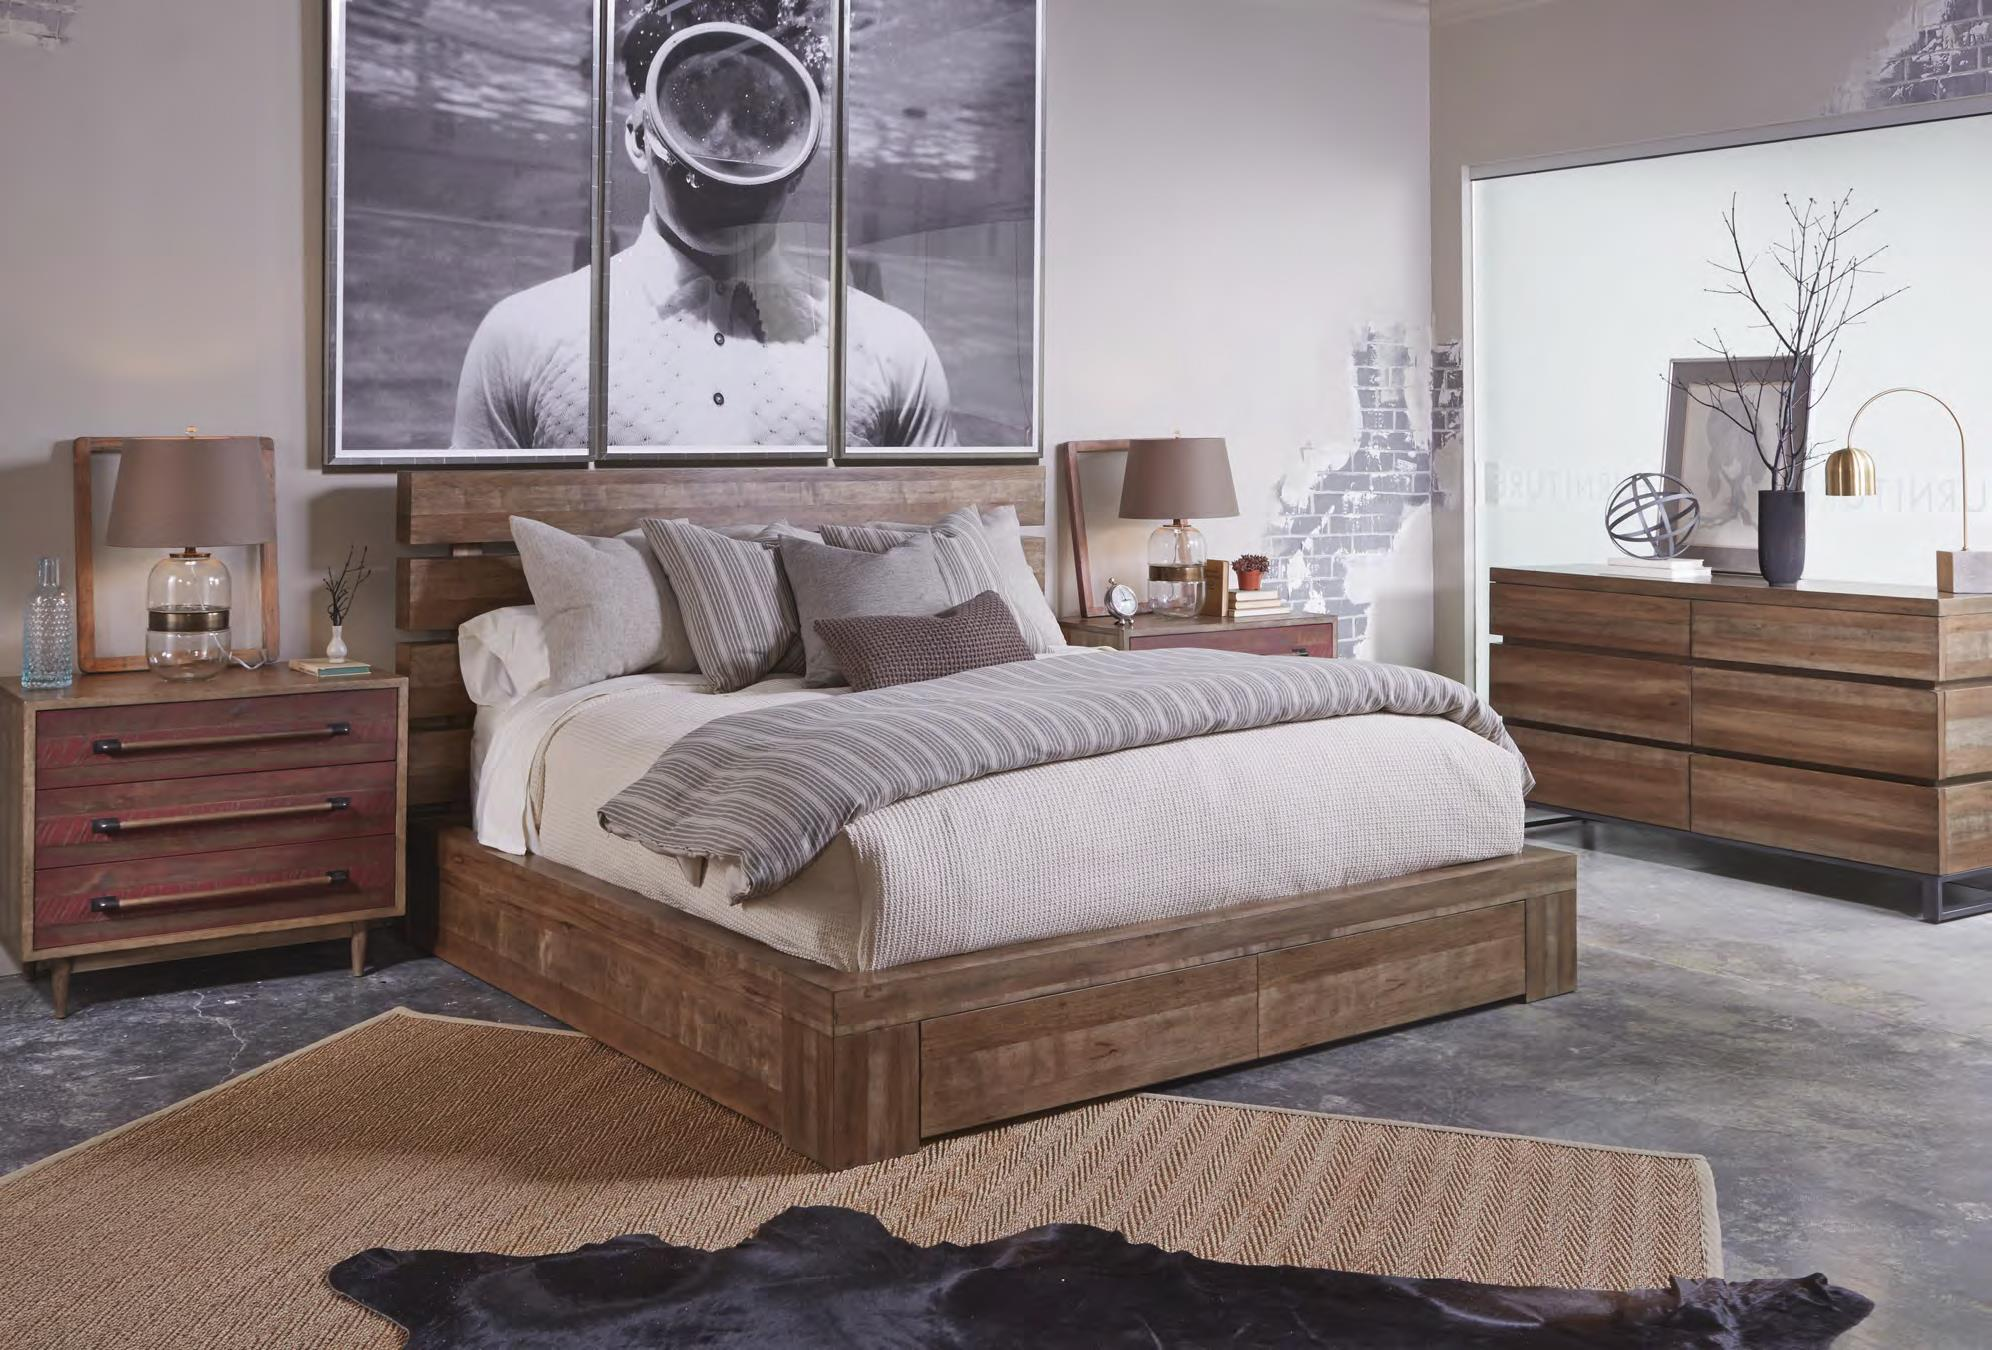 Belfort Signature Urban Treasures King Bedroom Group - Item Number: 223000-2302 K Bedroom Group 3